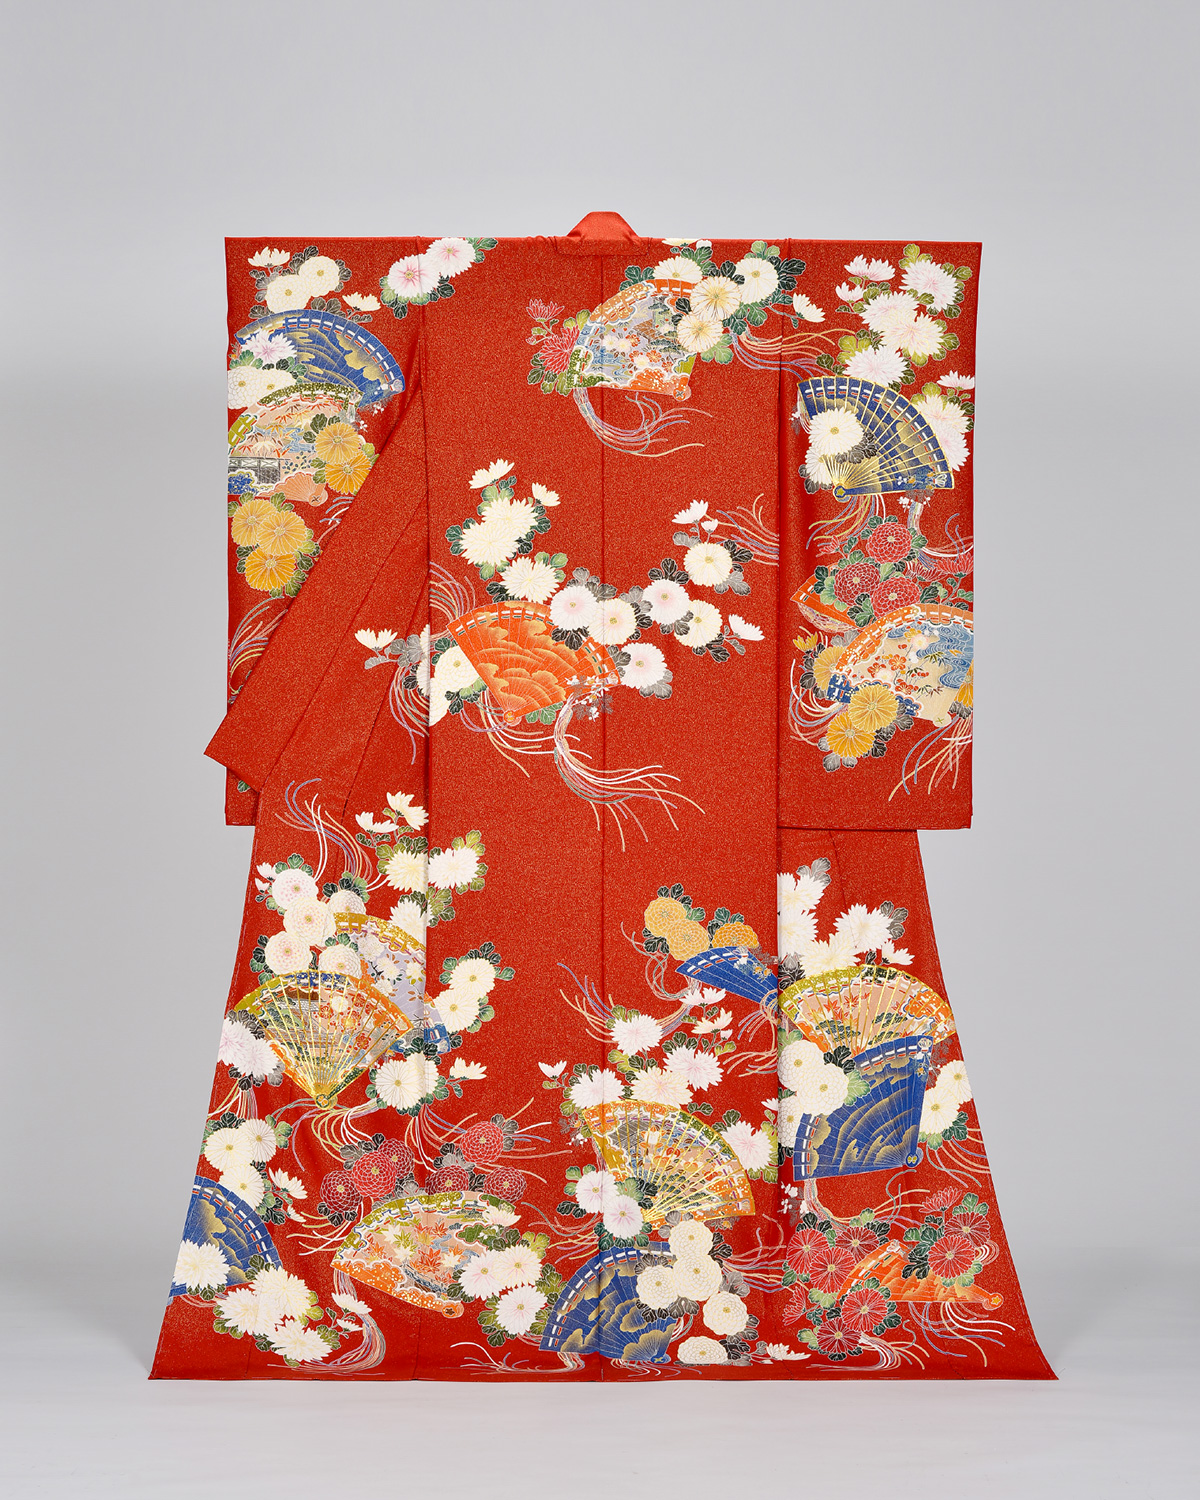 From the 2018 Chiso Wedding kimono collection